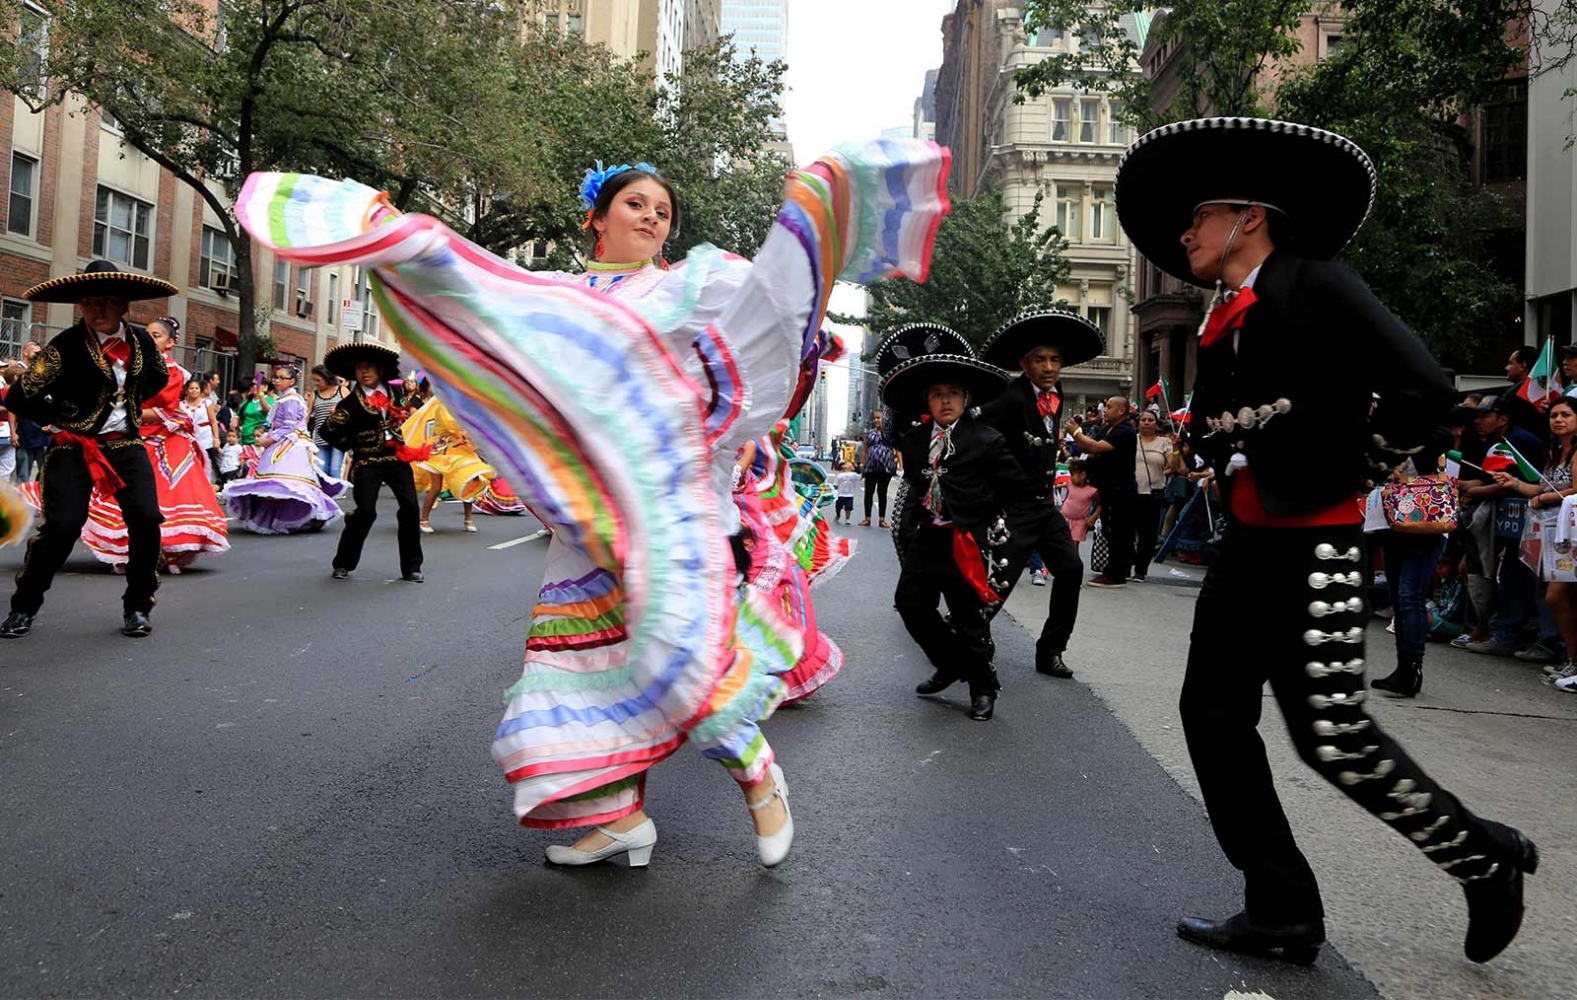 Mexican pride was on full display Sunday as the borough of Manhattan played host to the annual Mexican Day Parade. Thousands of parade-goers lined up along Madison Avenue to watch the festivities adorned with the country red, white and green flags.